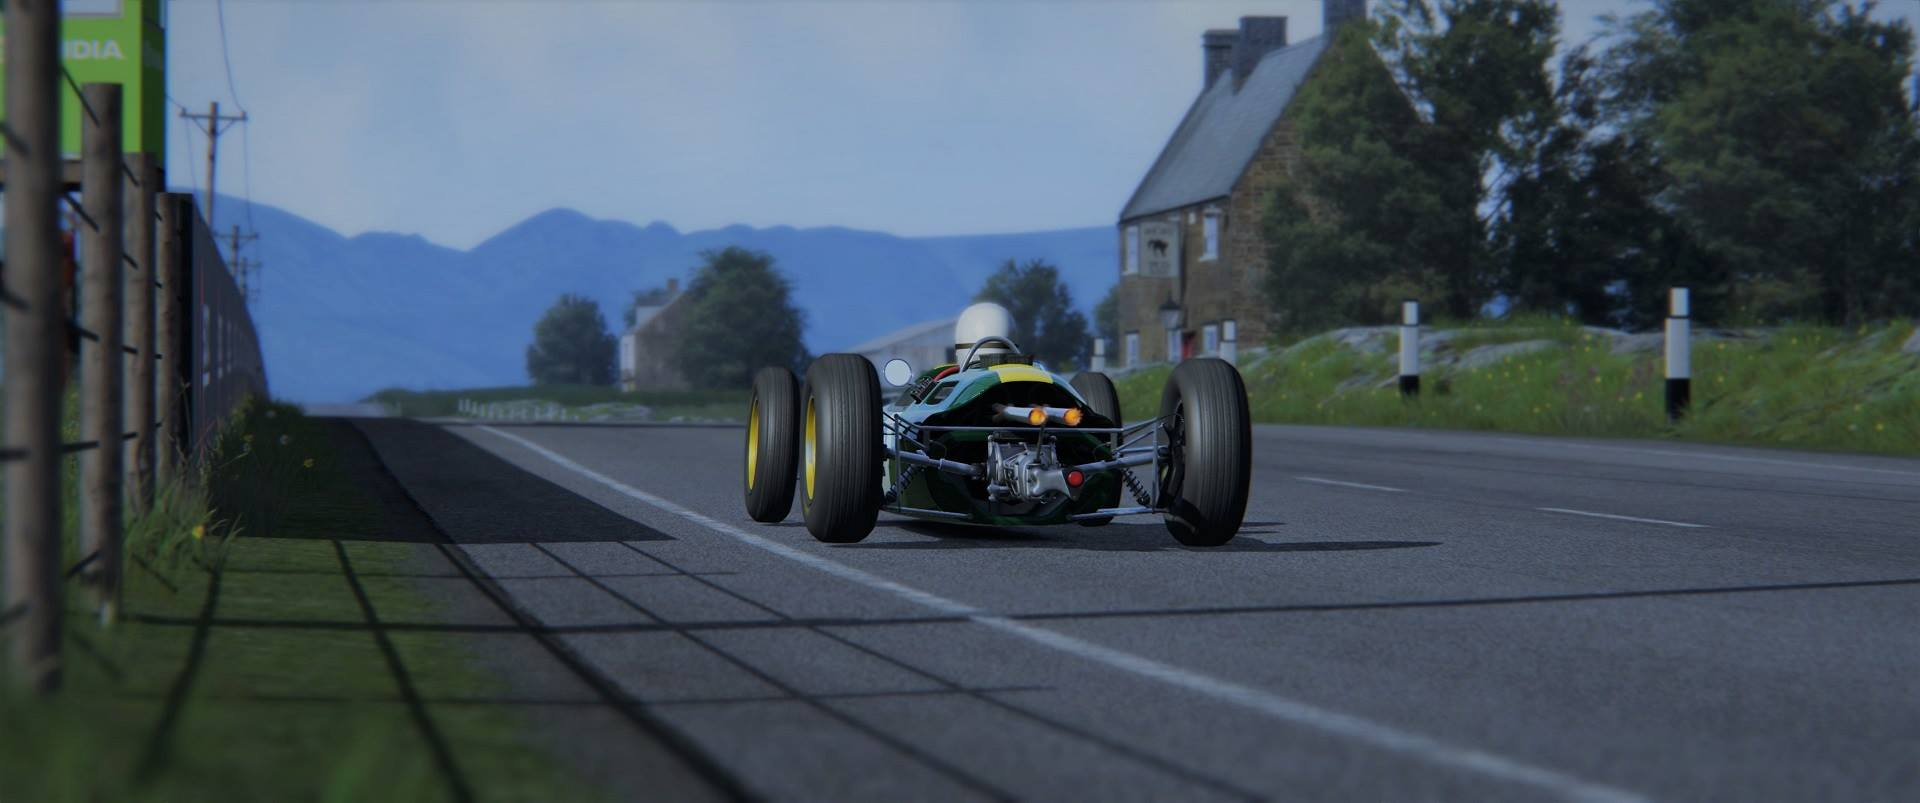 Assetto Corsa Highlands Track 2.jpg